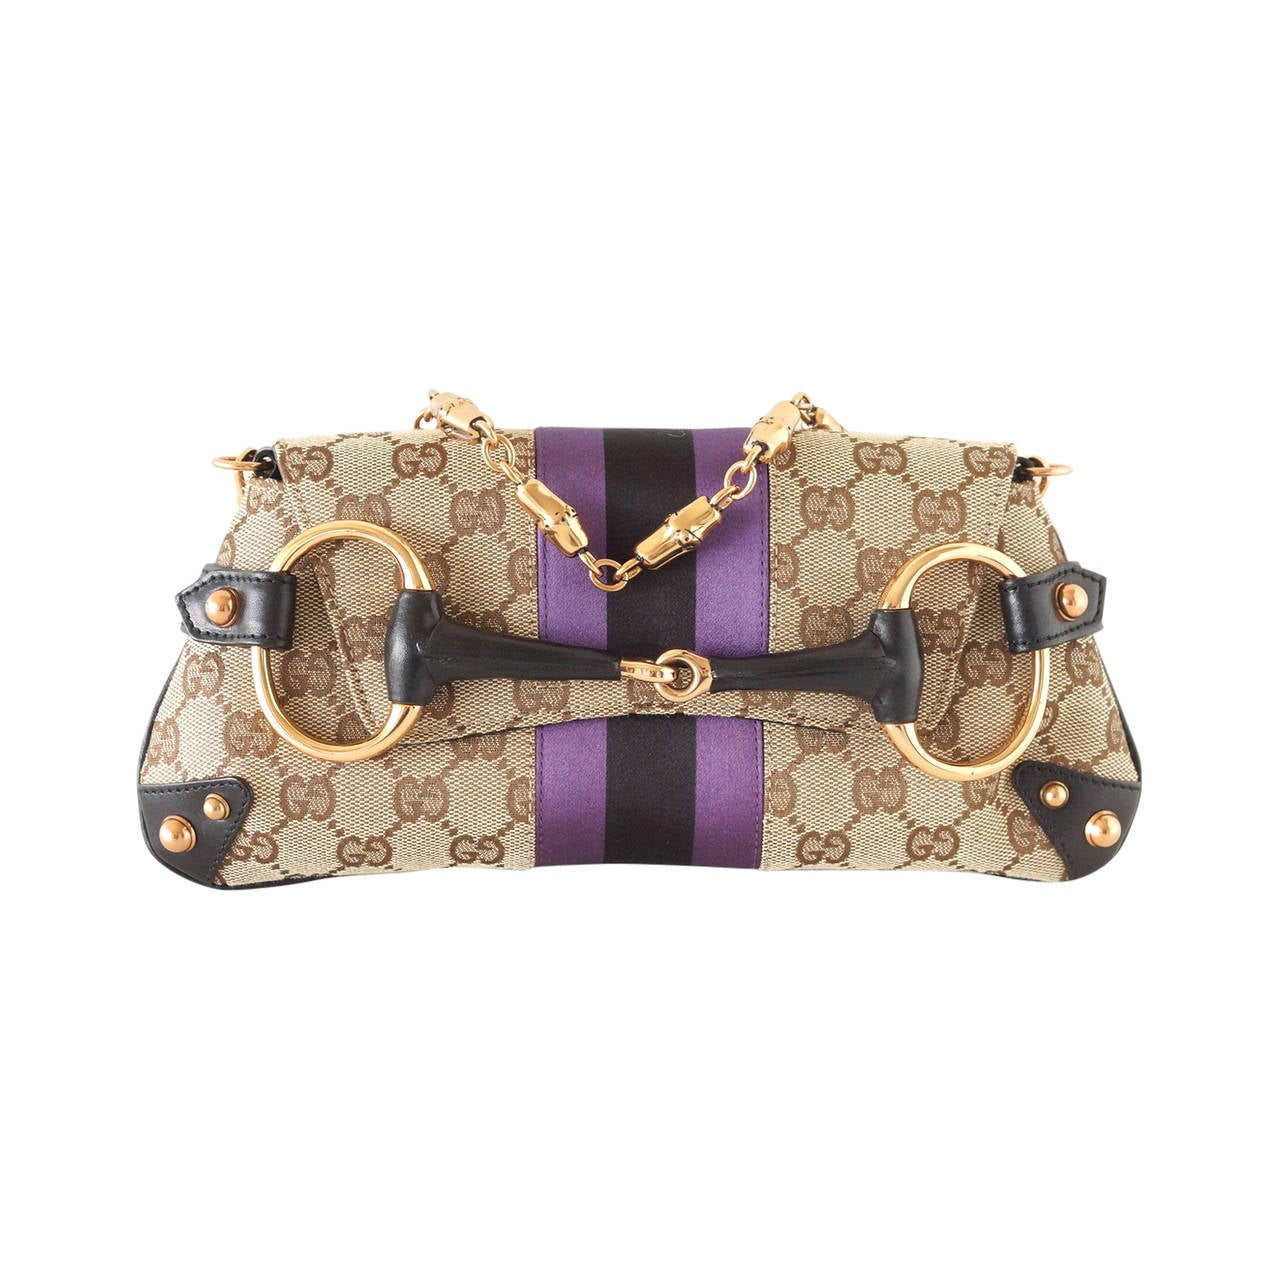 gucci clutch. gucci bag web clutch shoulder tom ford monogram rose gold horsebit 1 gucci